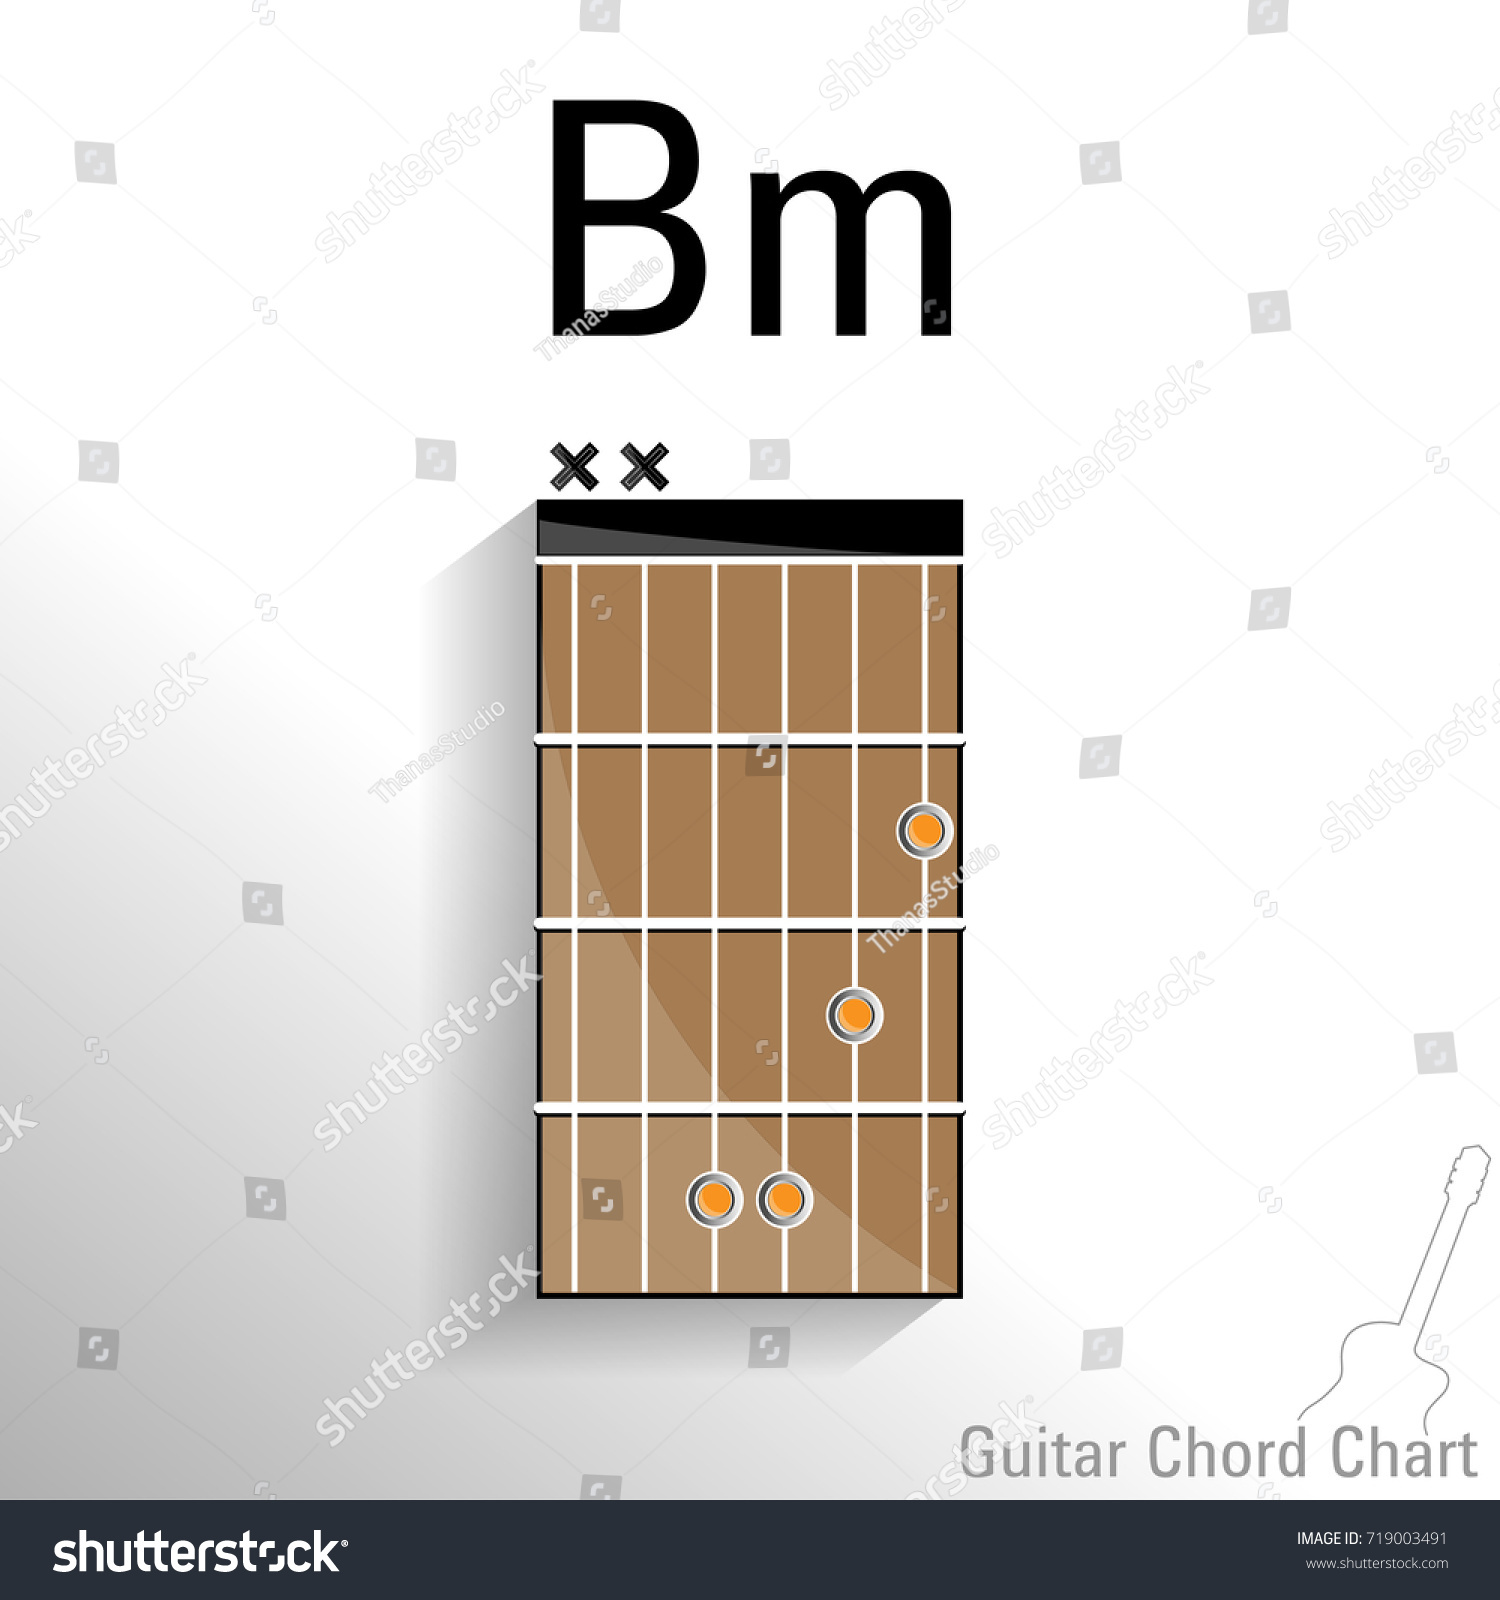 Guitar Chord Bm Chart Vector Design Stock Vector 719003491